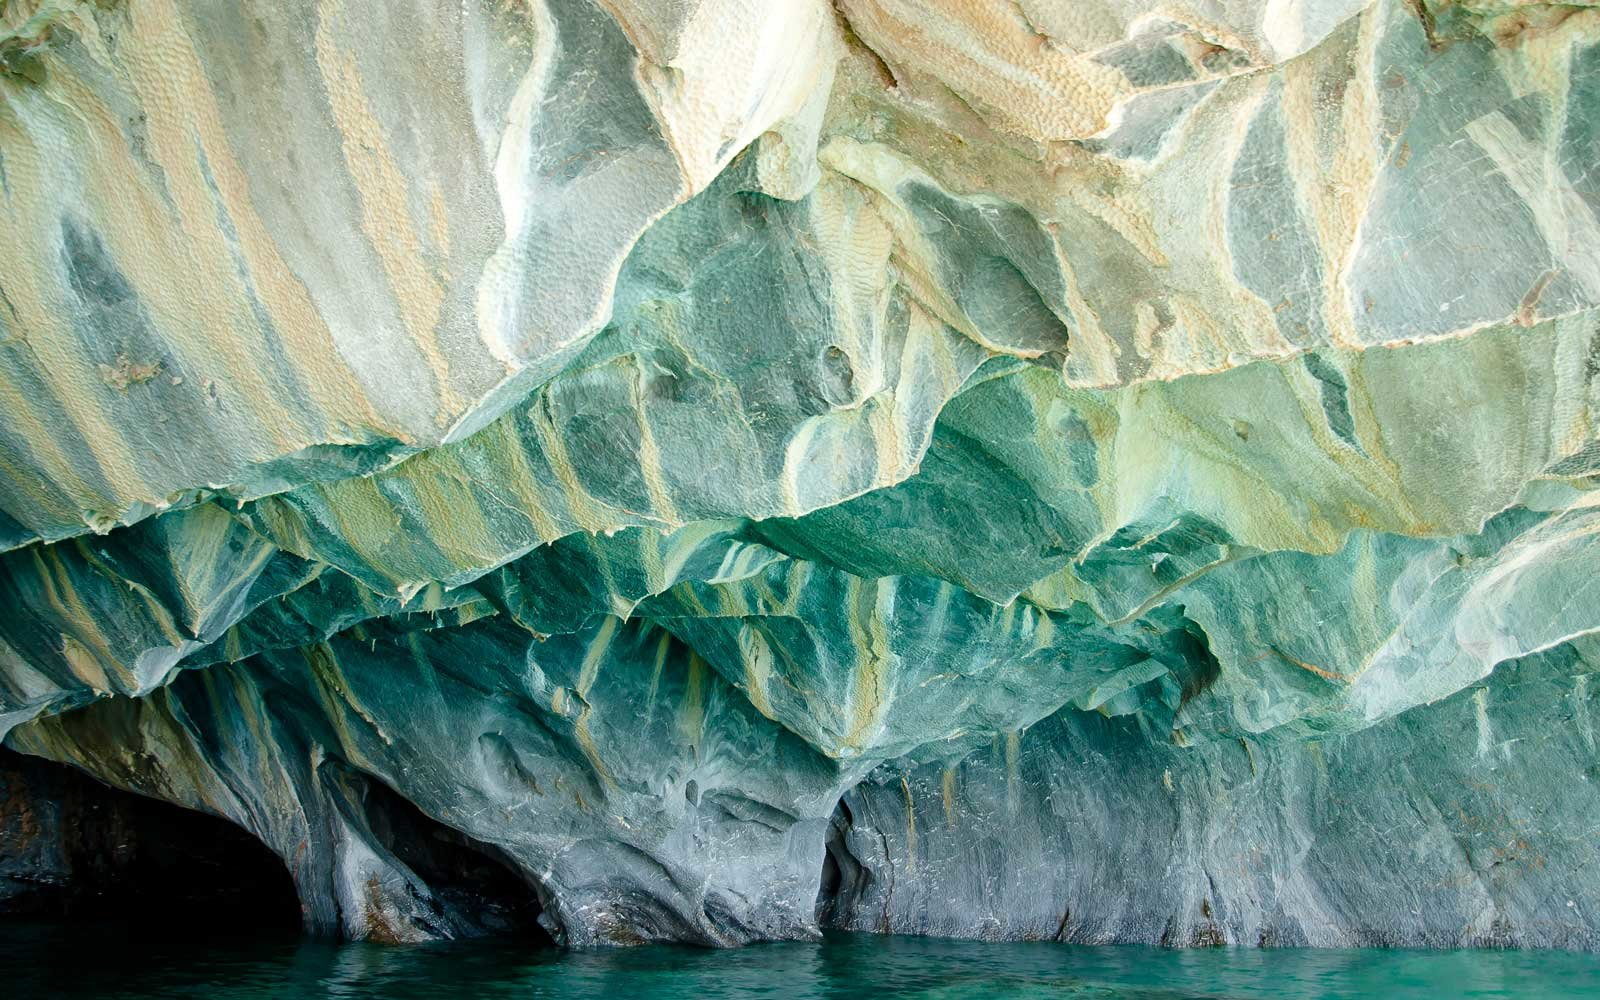 In Photos: Patagonia's Stunning Marble Caves